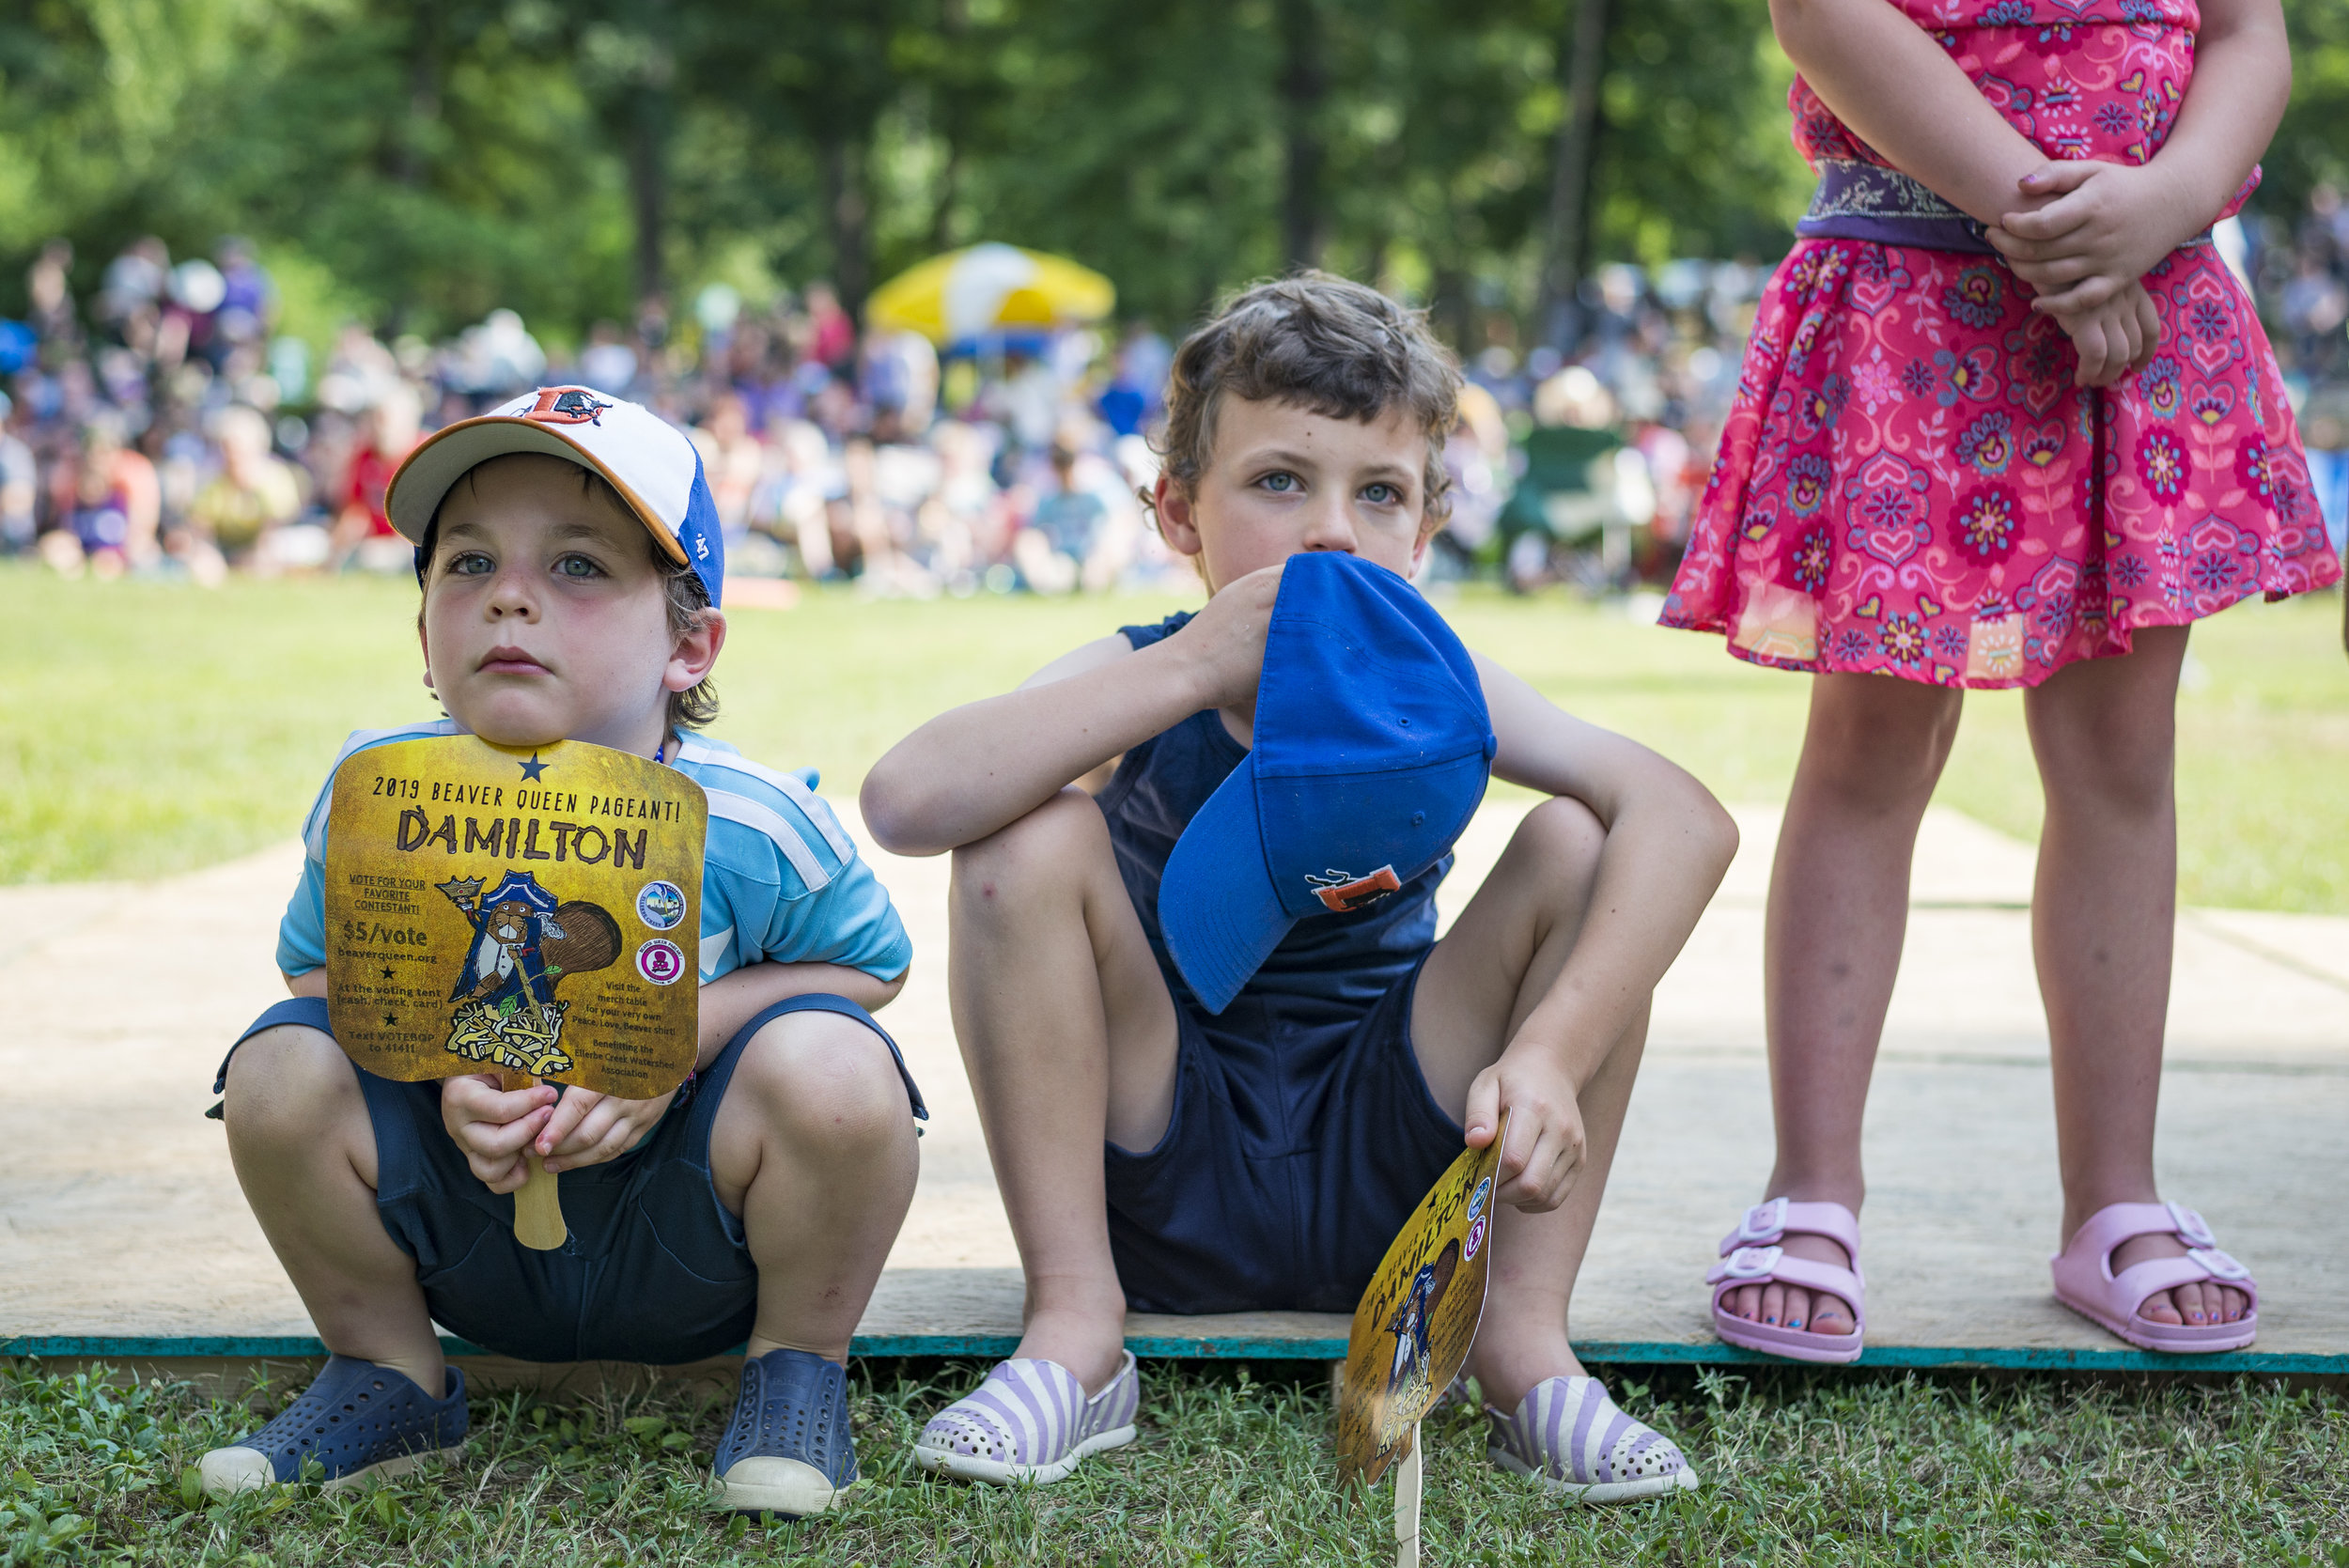 Young members of the crowd watch one of the acts at the 2019 Beaver Queen Pageant on June 1, 2019 in Durham Park.